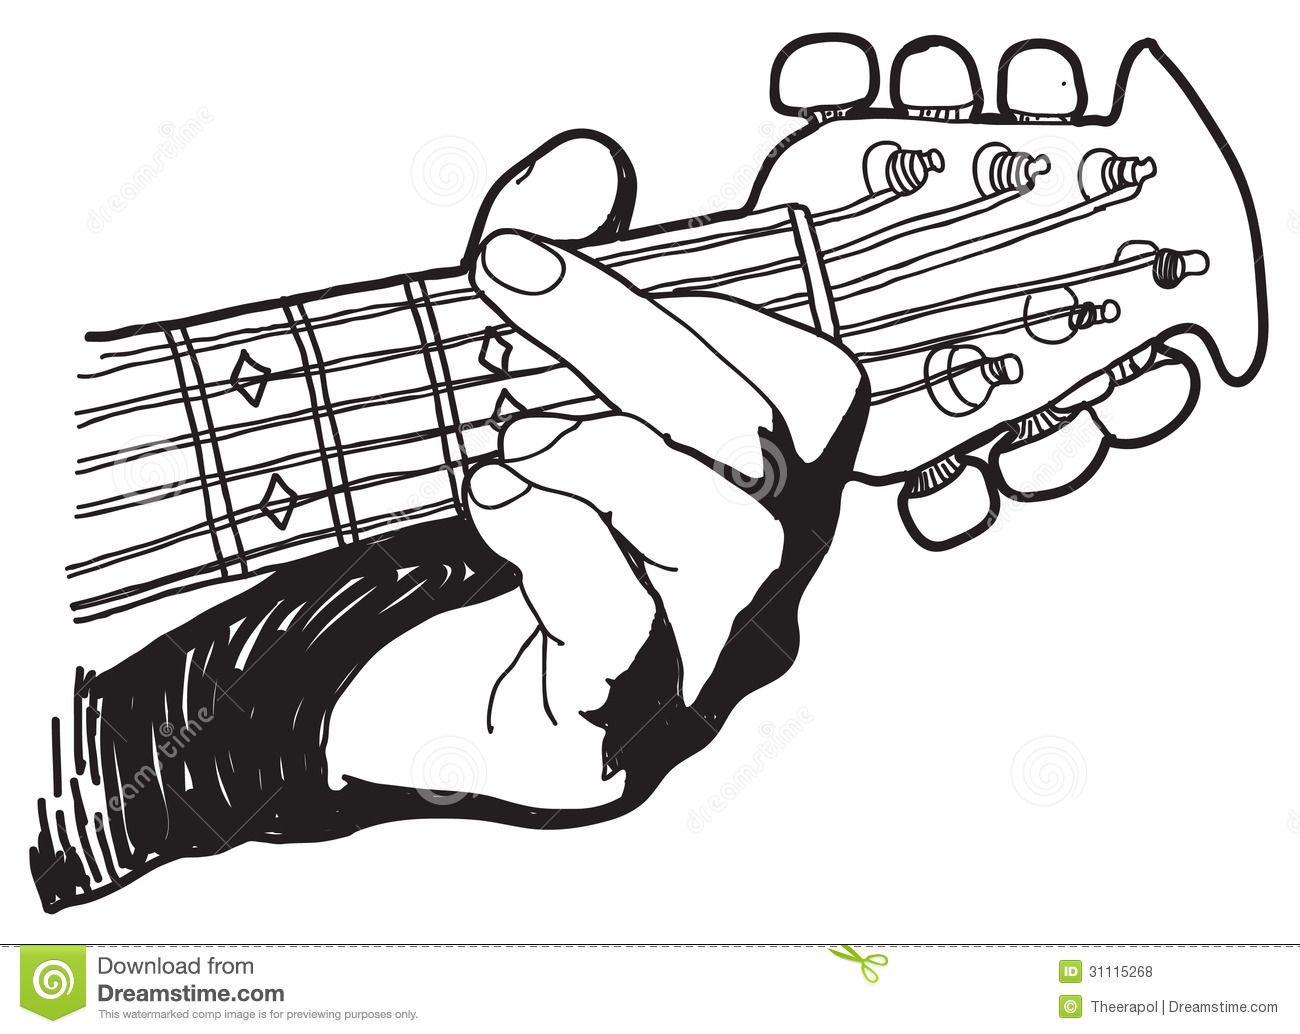 Royalty Free Stock Photos Hand Drawing Playing Guitar Image31115268 on chess vector graphics